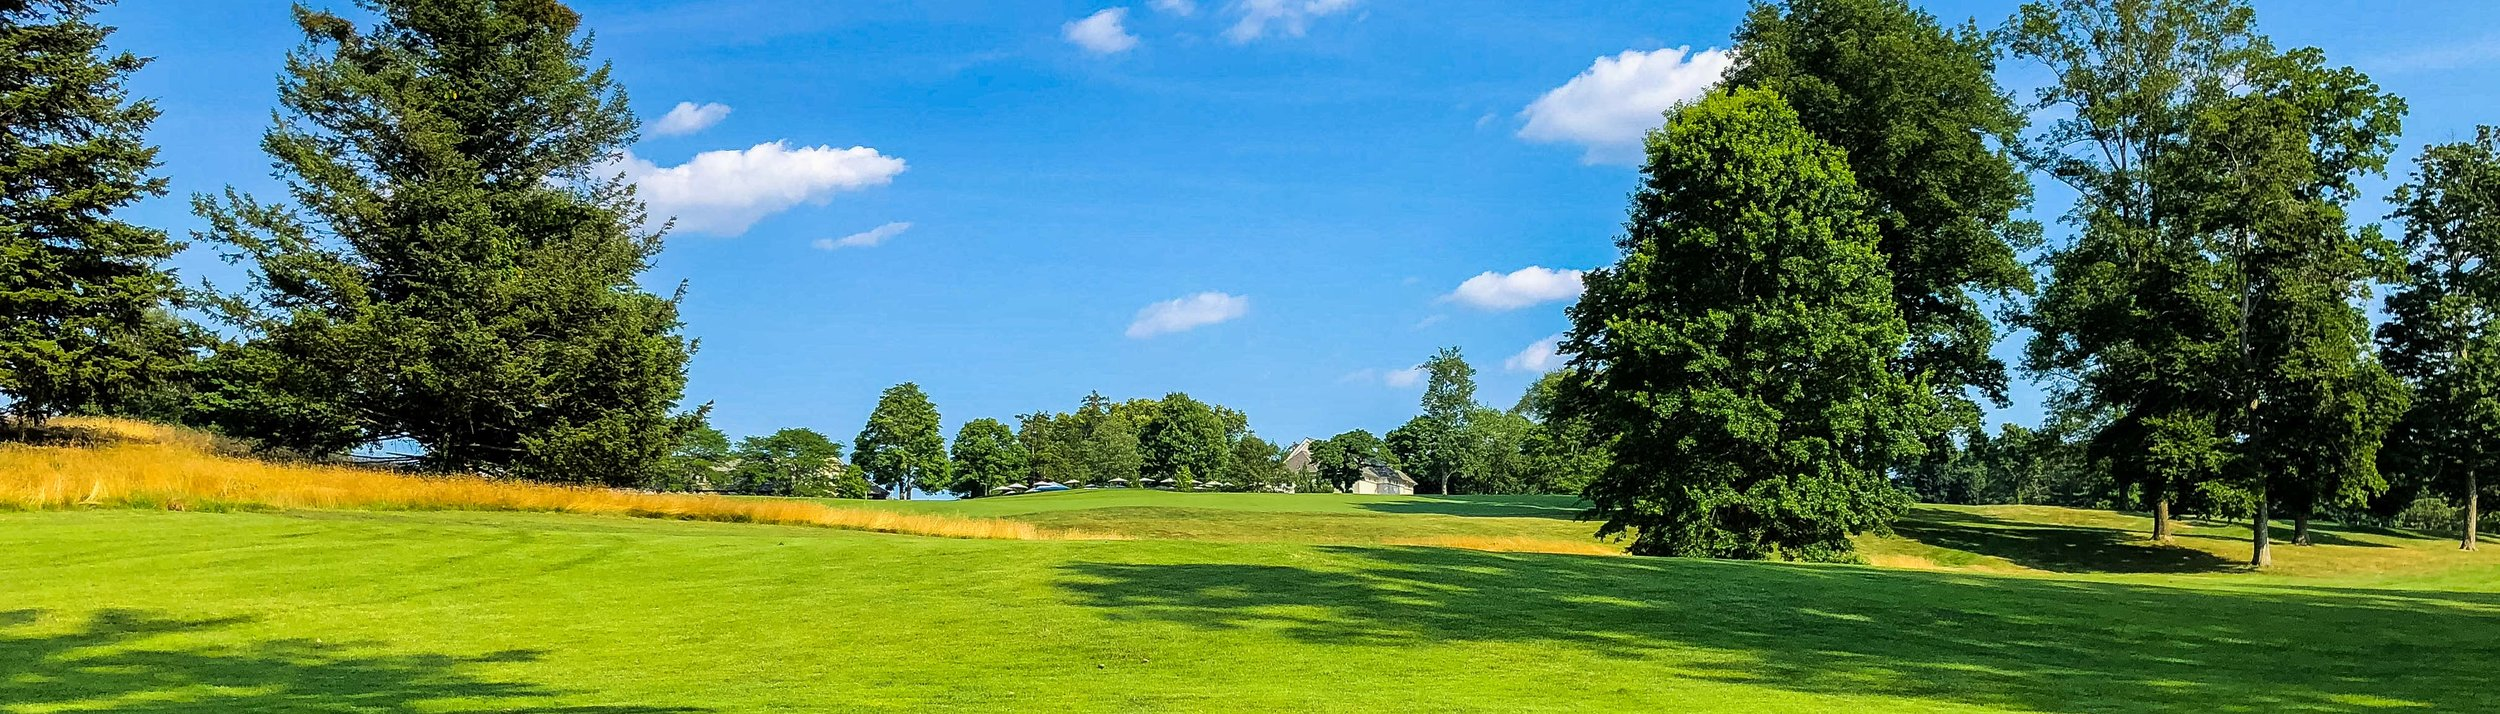 Golf Course SCC 2018- HAP (4 of 33).jpg